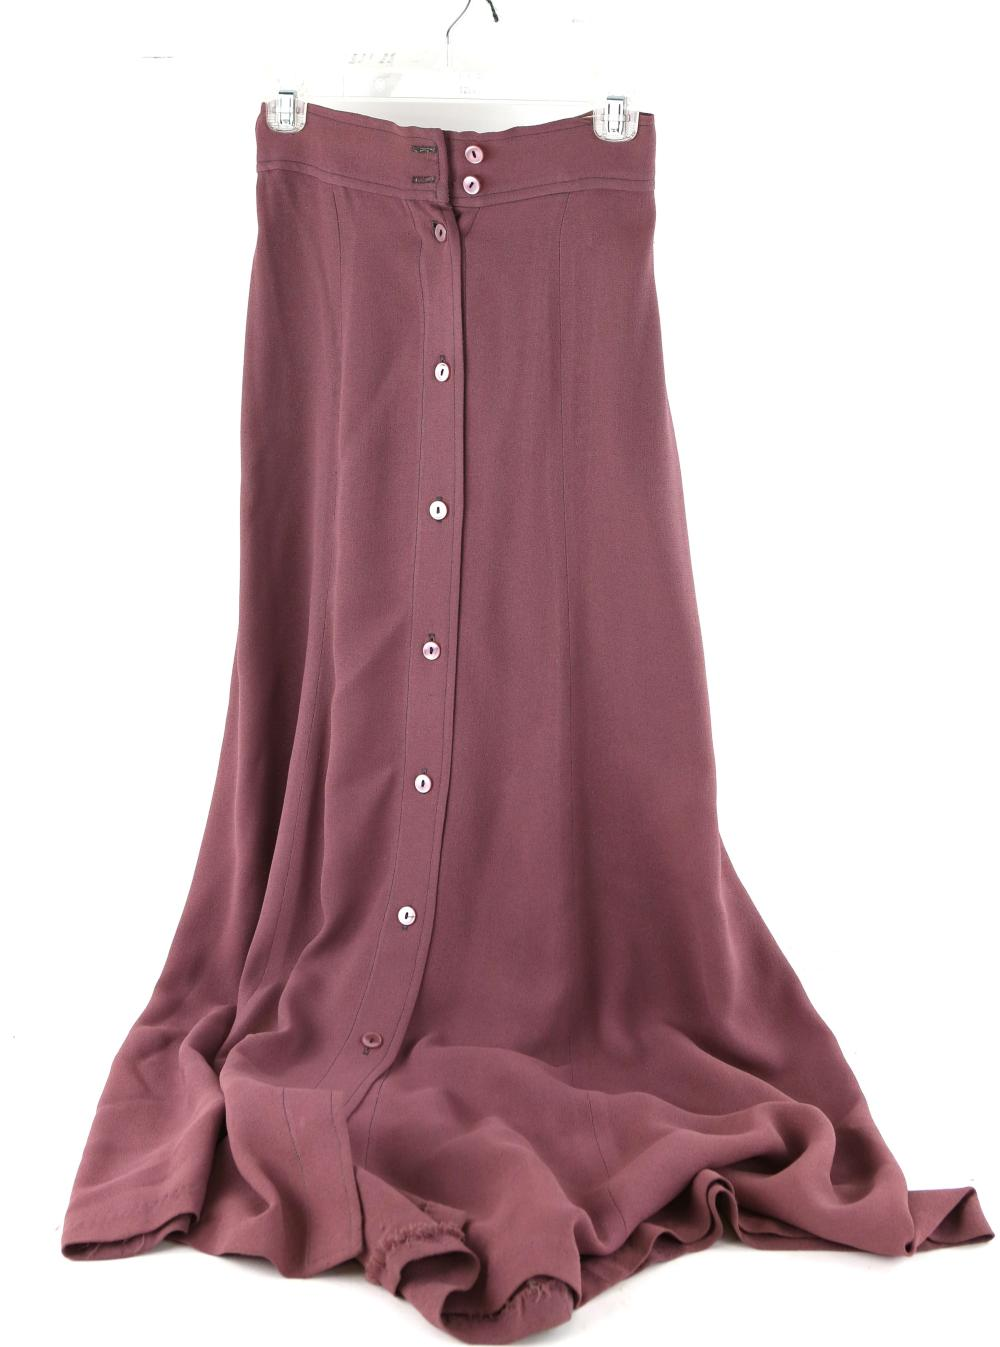 Ozzie Clark crepe long skirt in dusty pink and oth